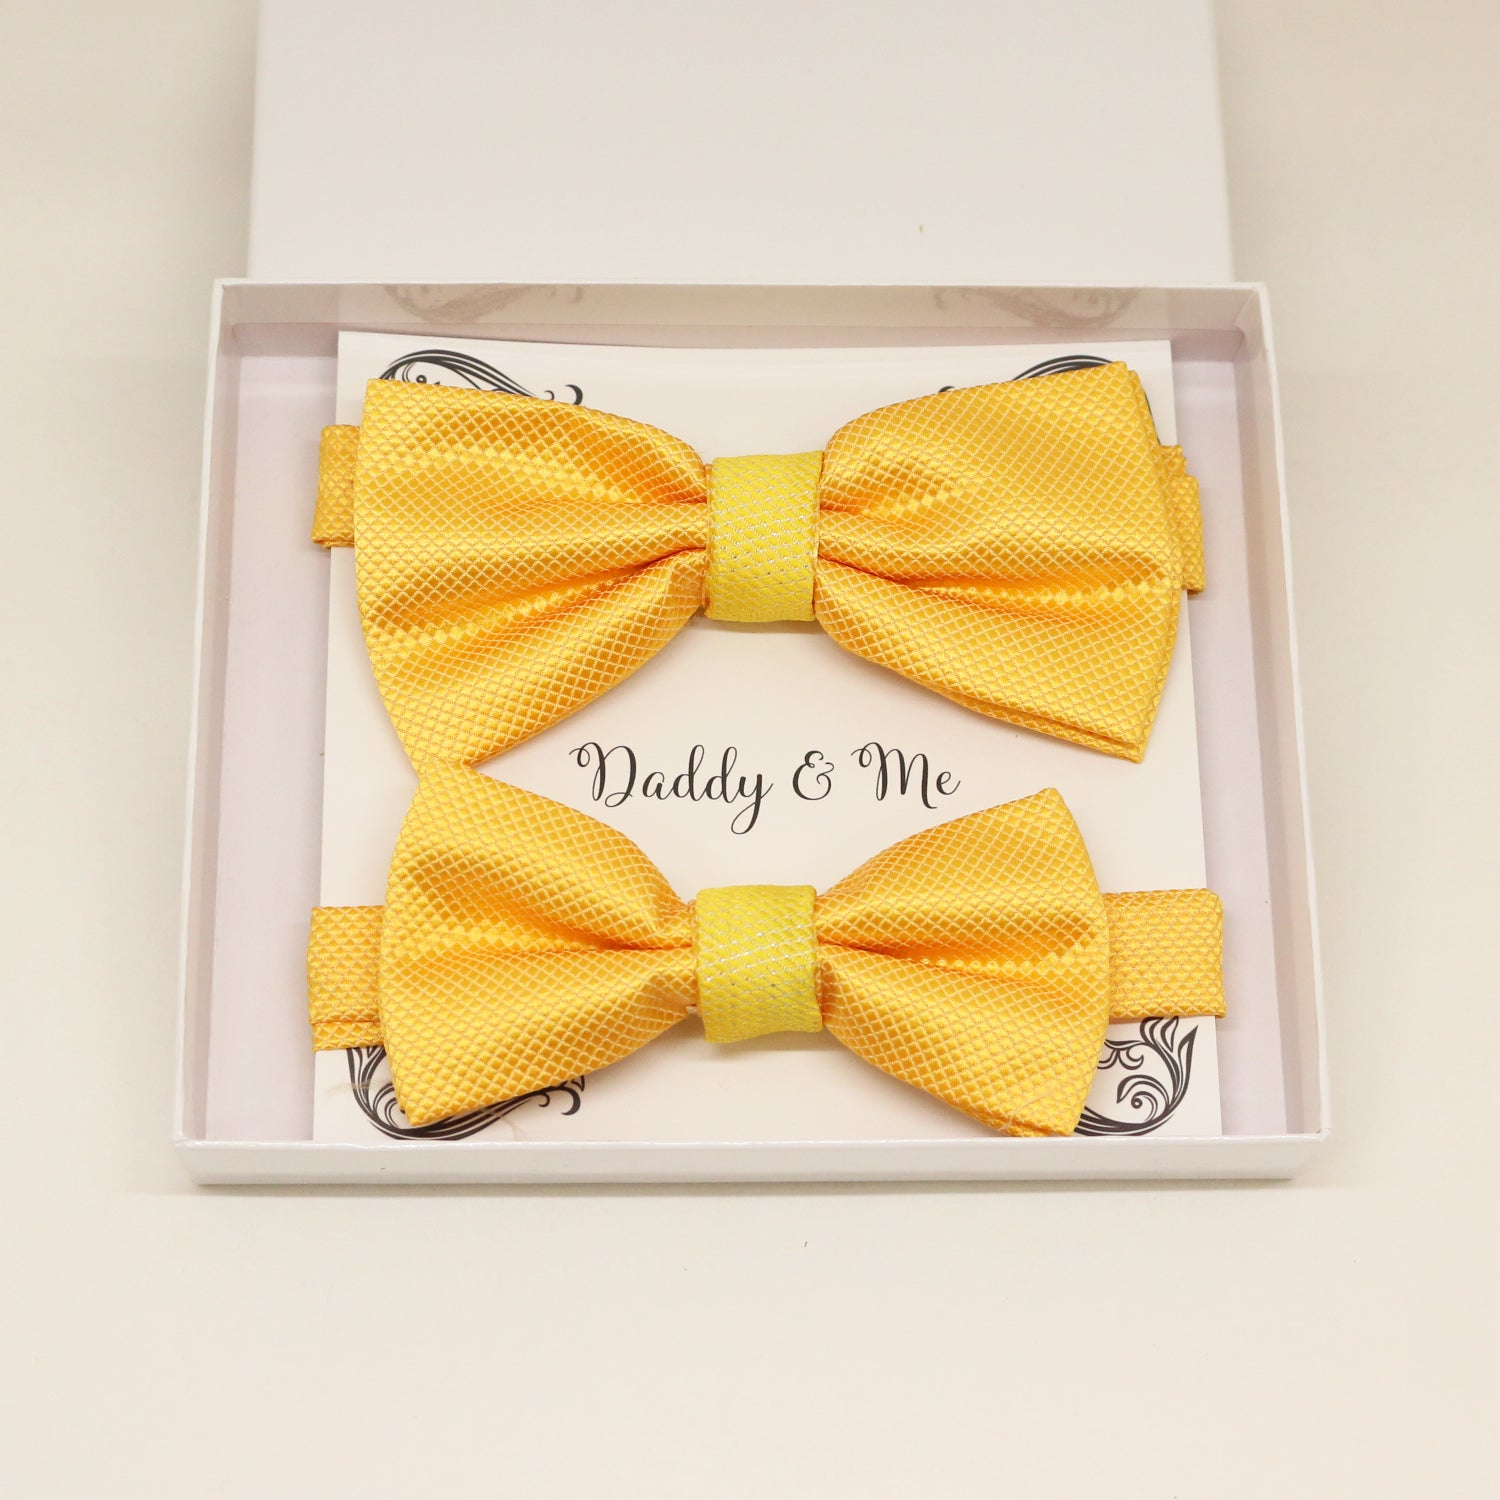 Sunny Yellow Bow tie set for daddy and son, Daddy me gift set, Grandpa gift, Father son match, Toddler bow tie, daddy me bow, Yellow bow tie